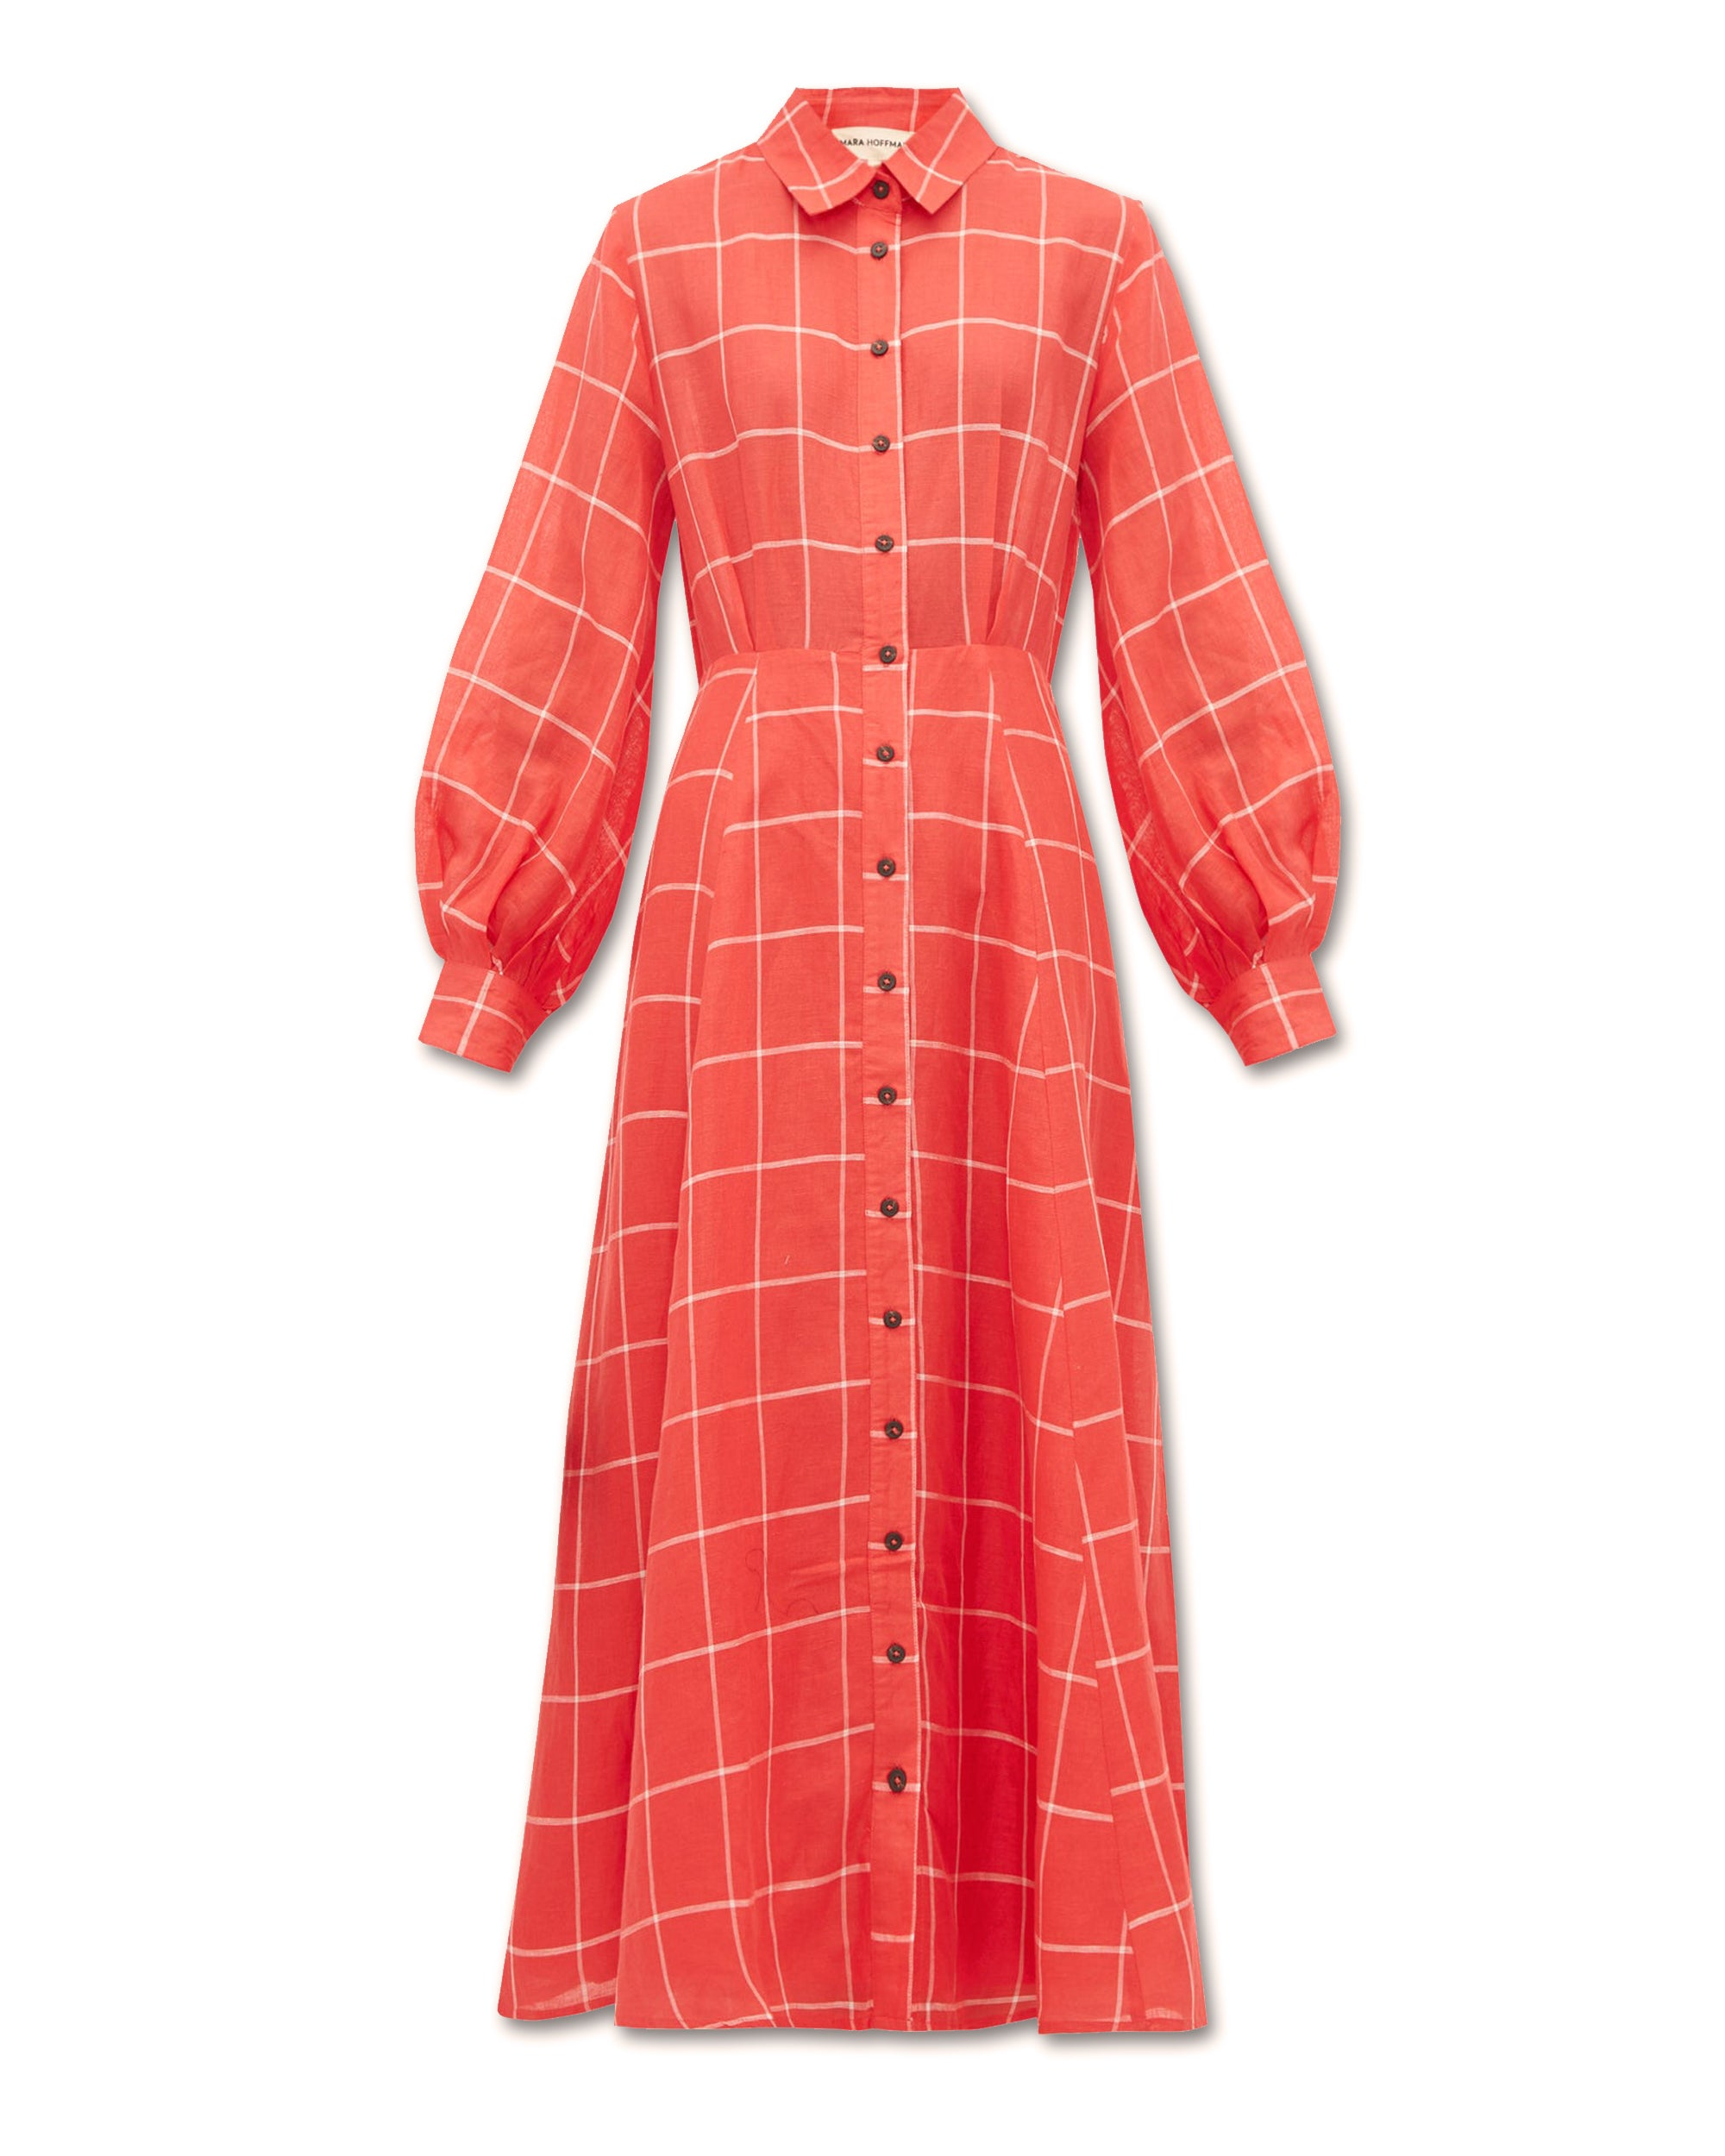 MARA HOFFMAN Lilliana Shirt Dress Red Check